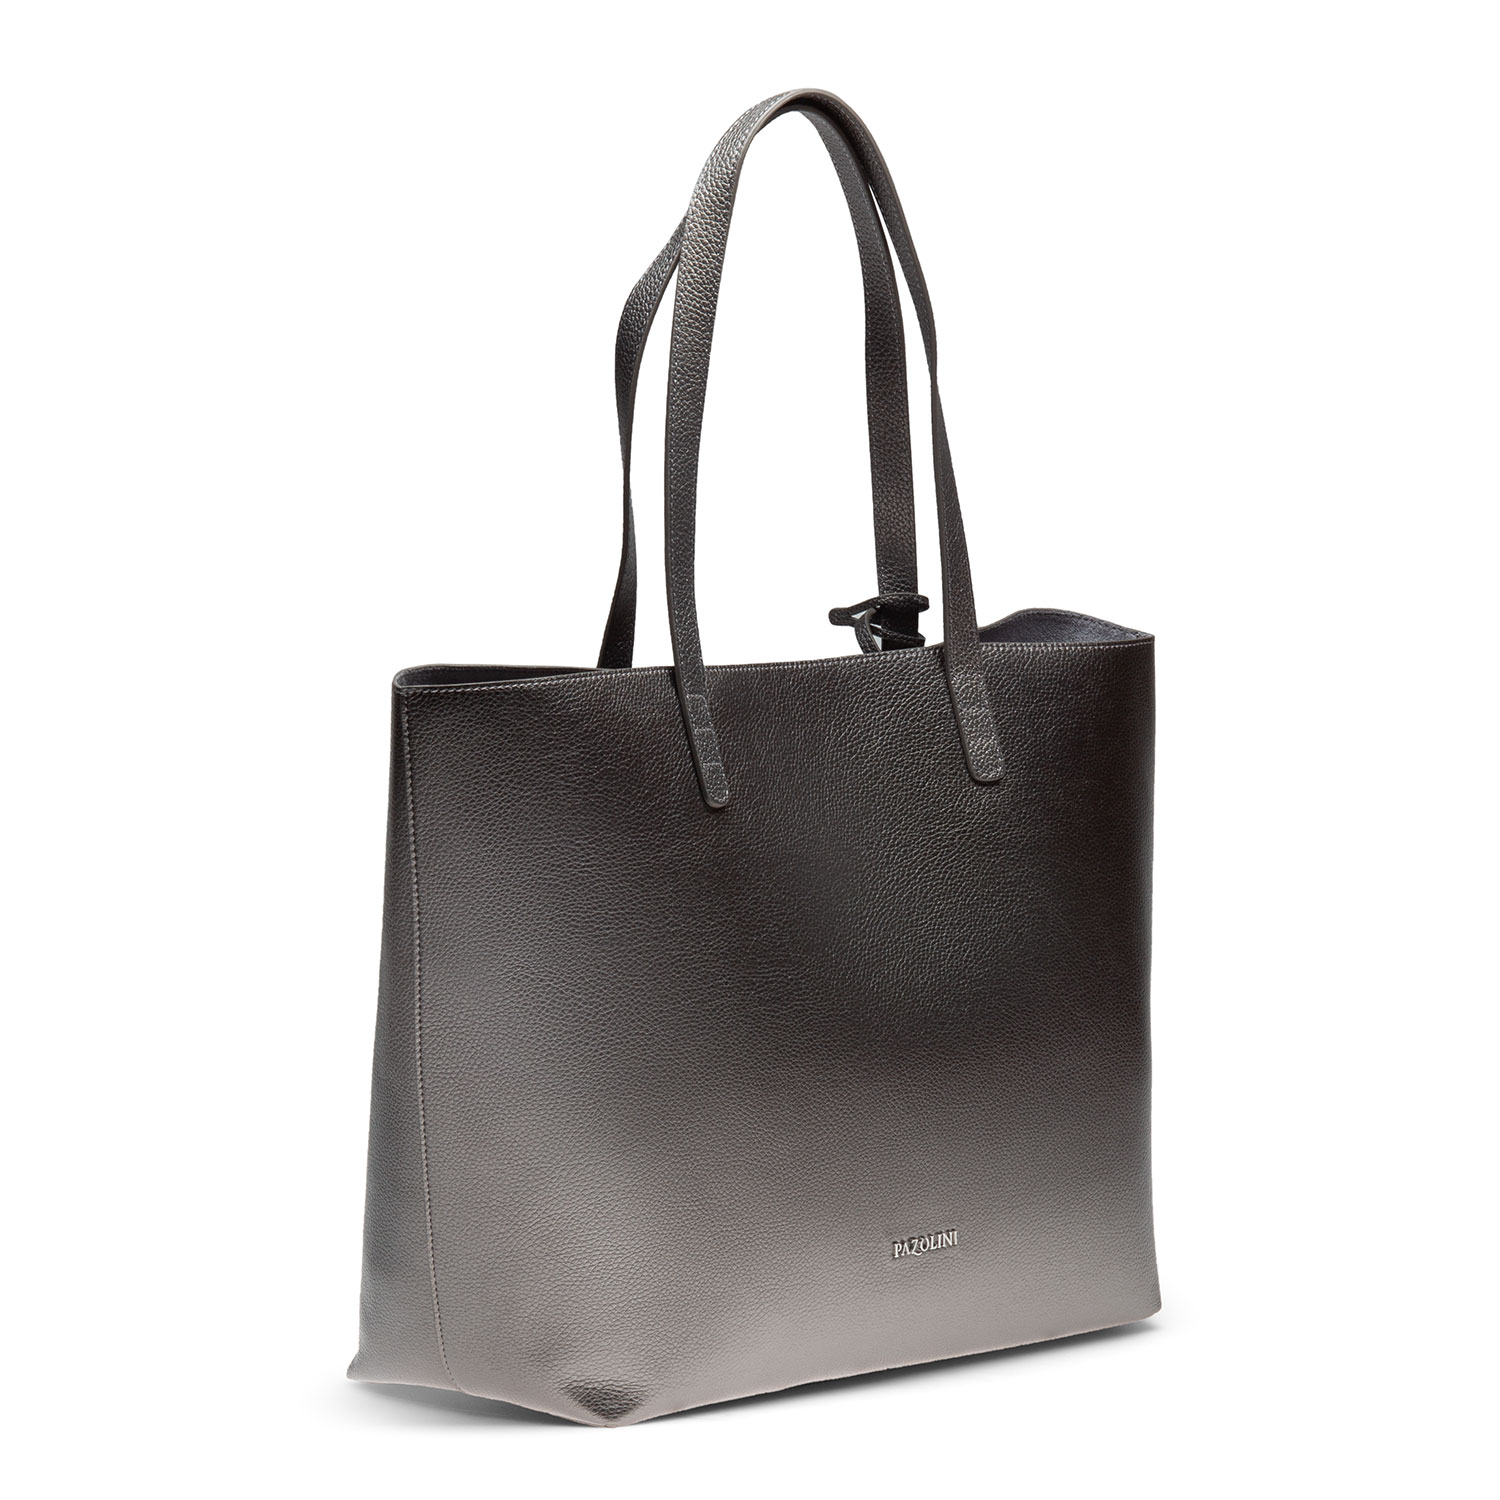 BORSA SHOPPING PAZOLINI BS-N3755-8